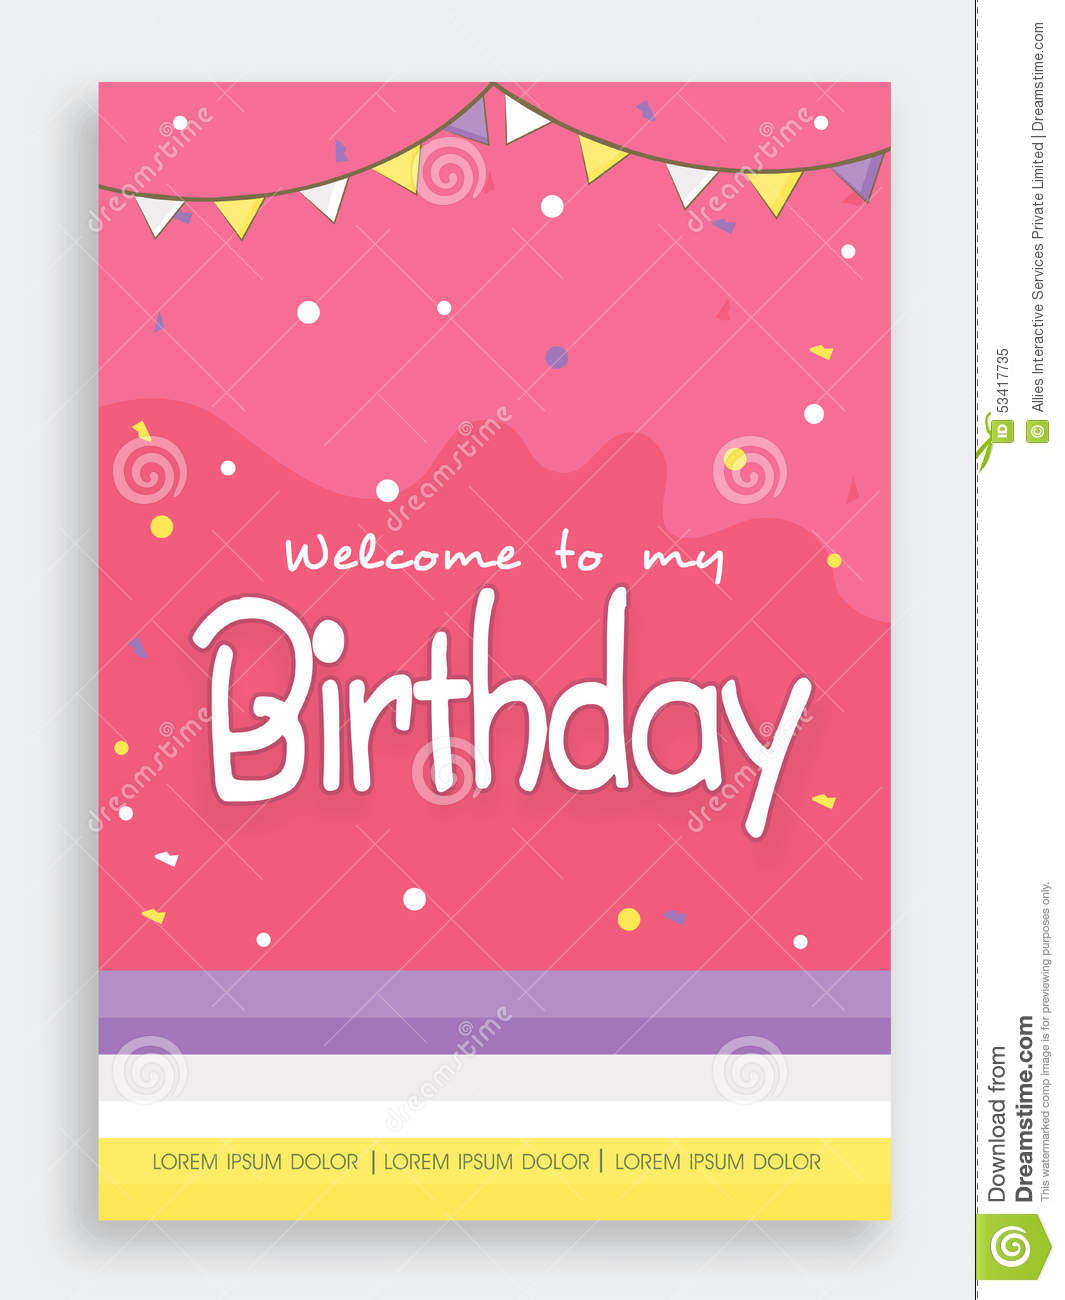 Invitation Card Design For Birthday Party Photo Image – Birthday Invitations Cards Designs